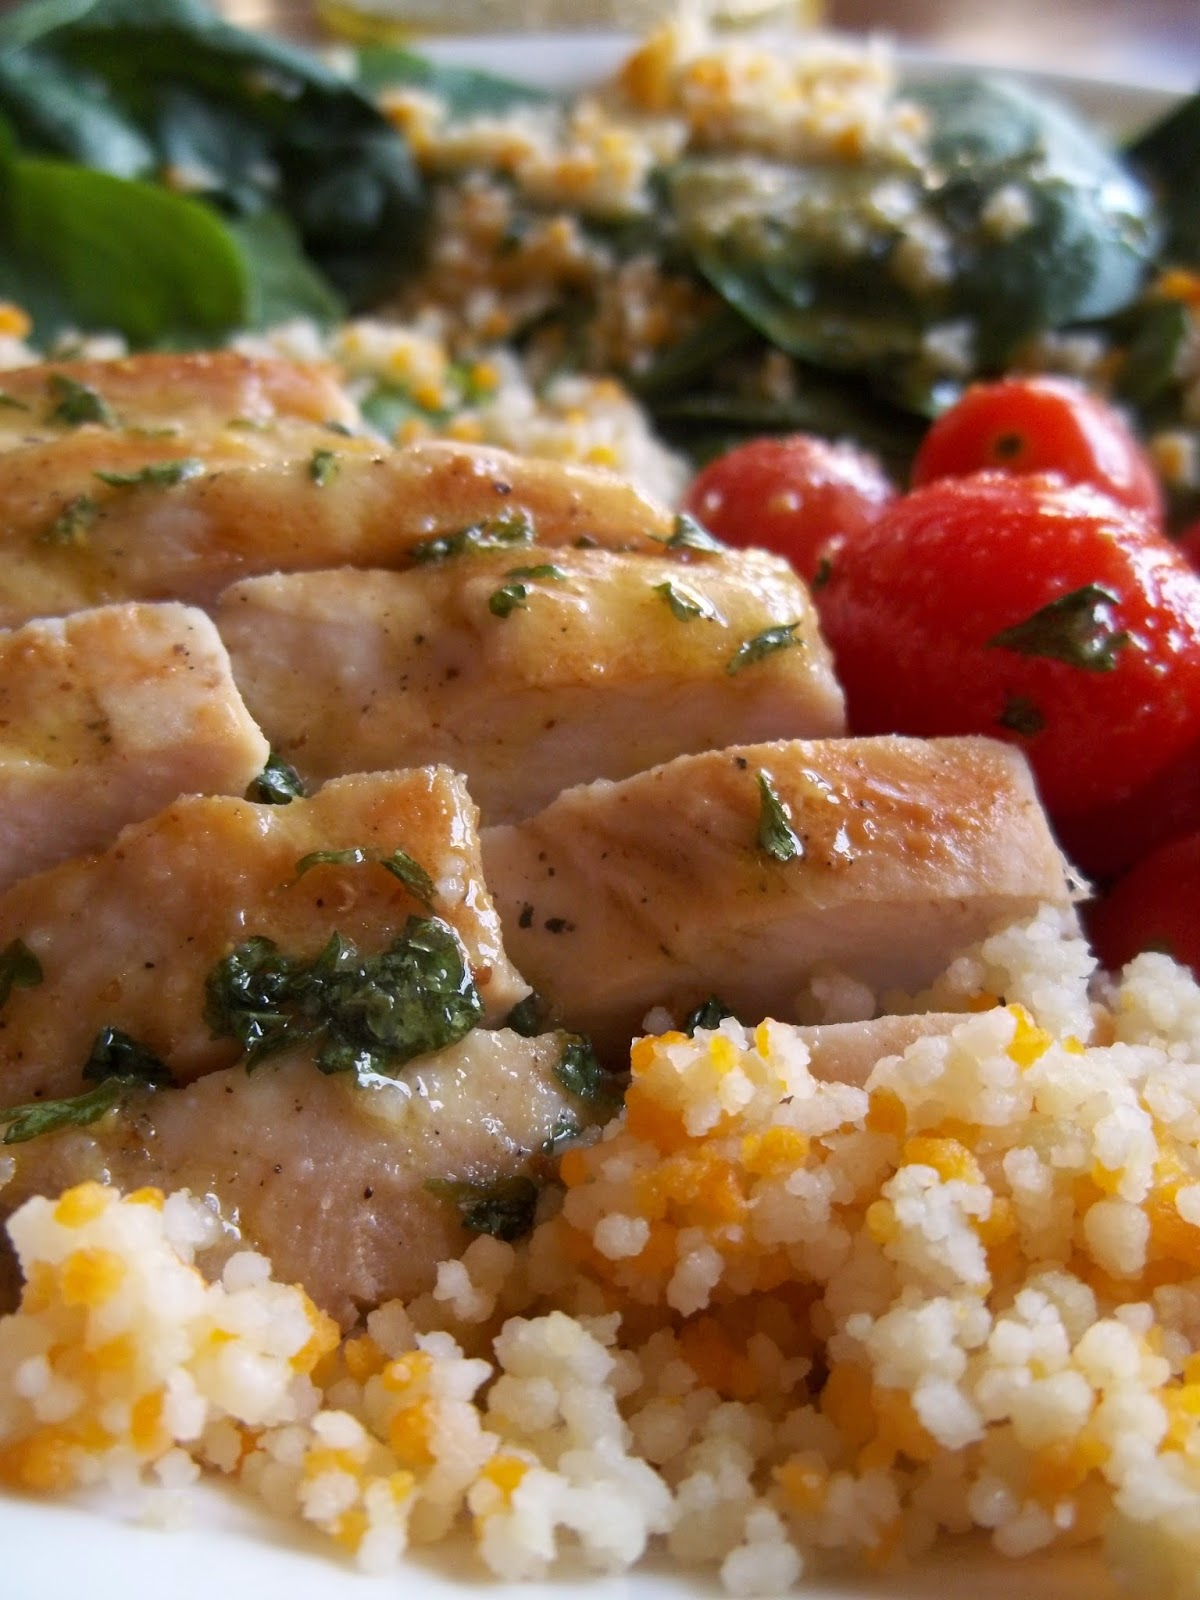 Grilled chicken, couscous, spinach and tomato salad with homemade vinaigrette.